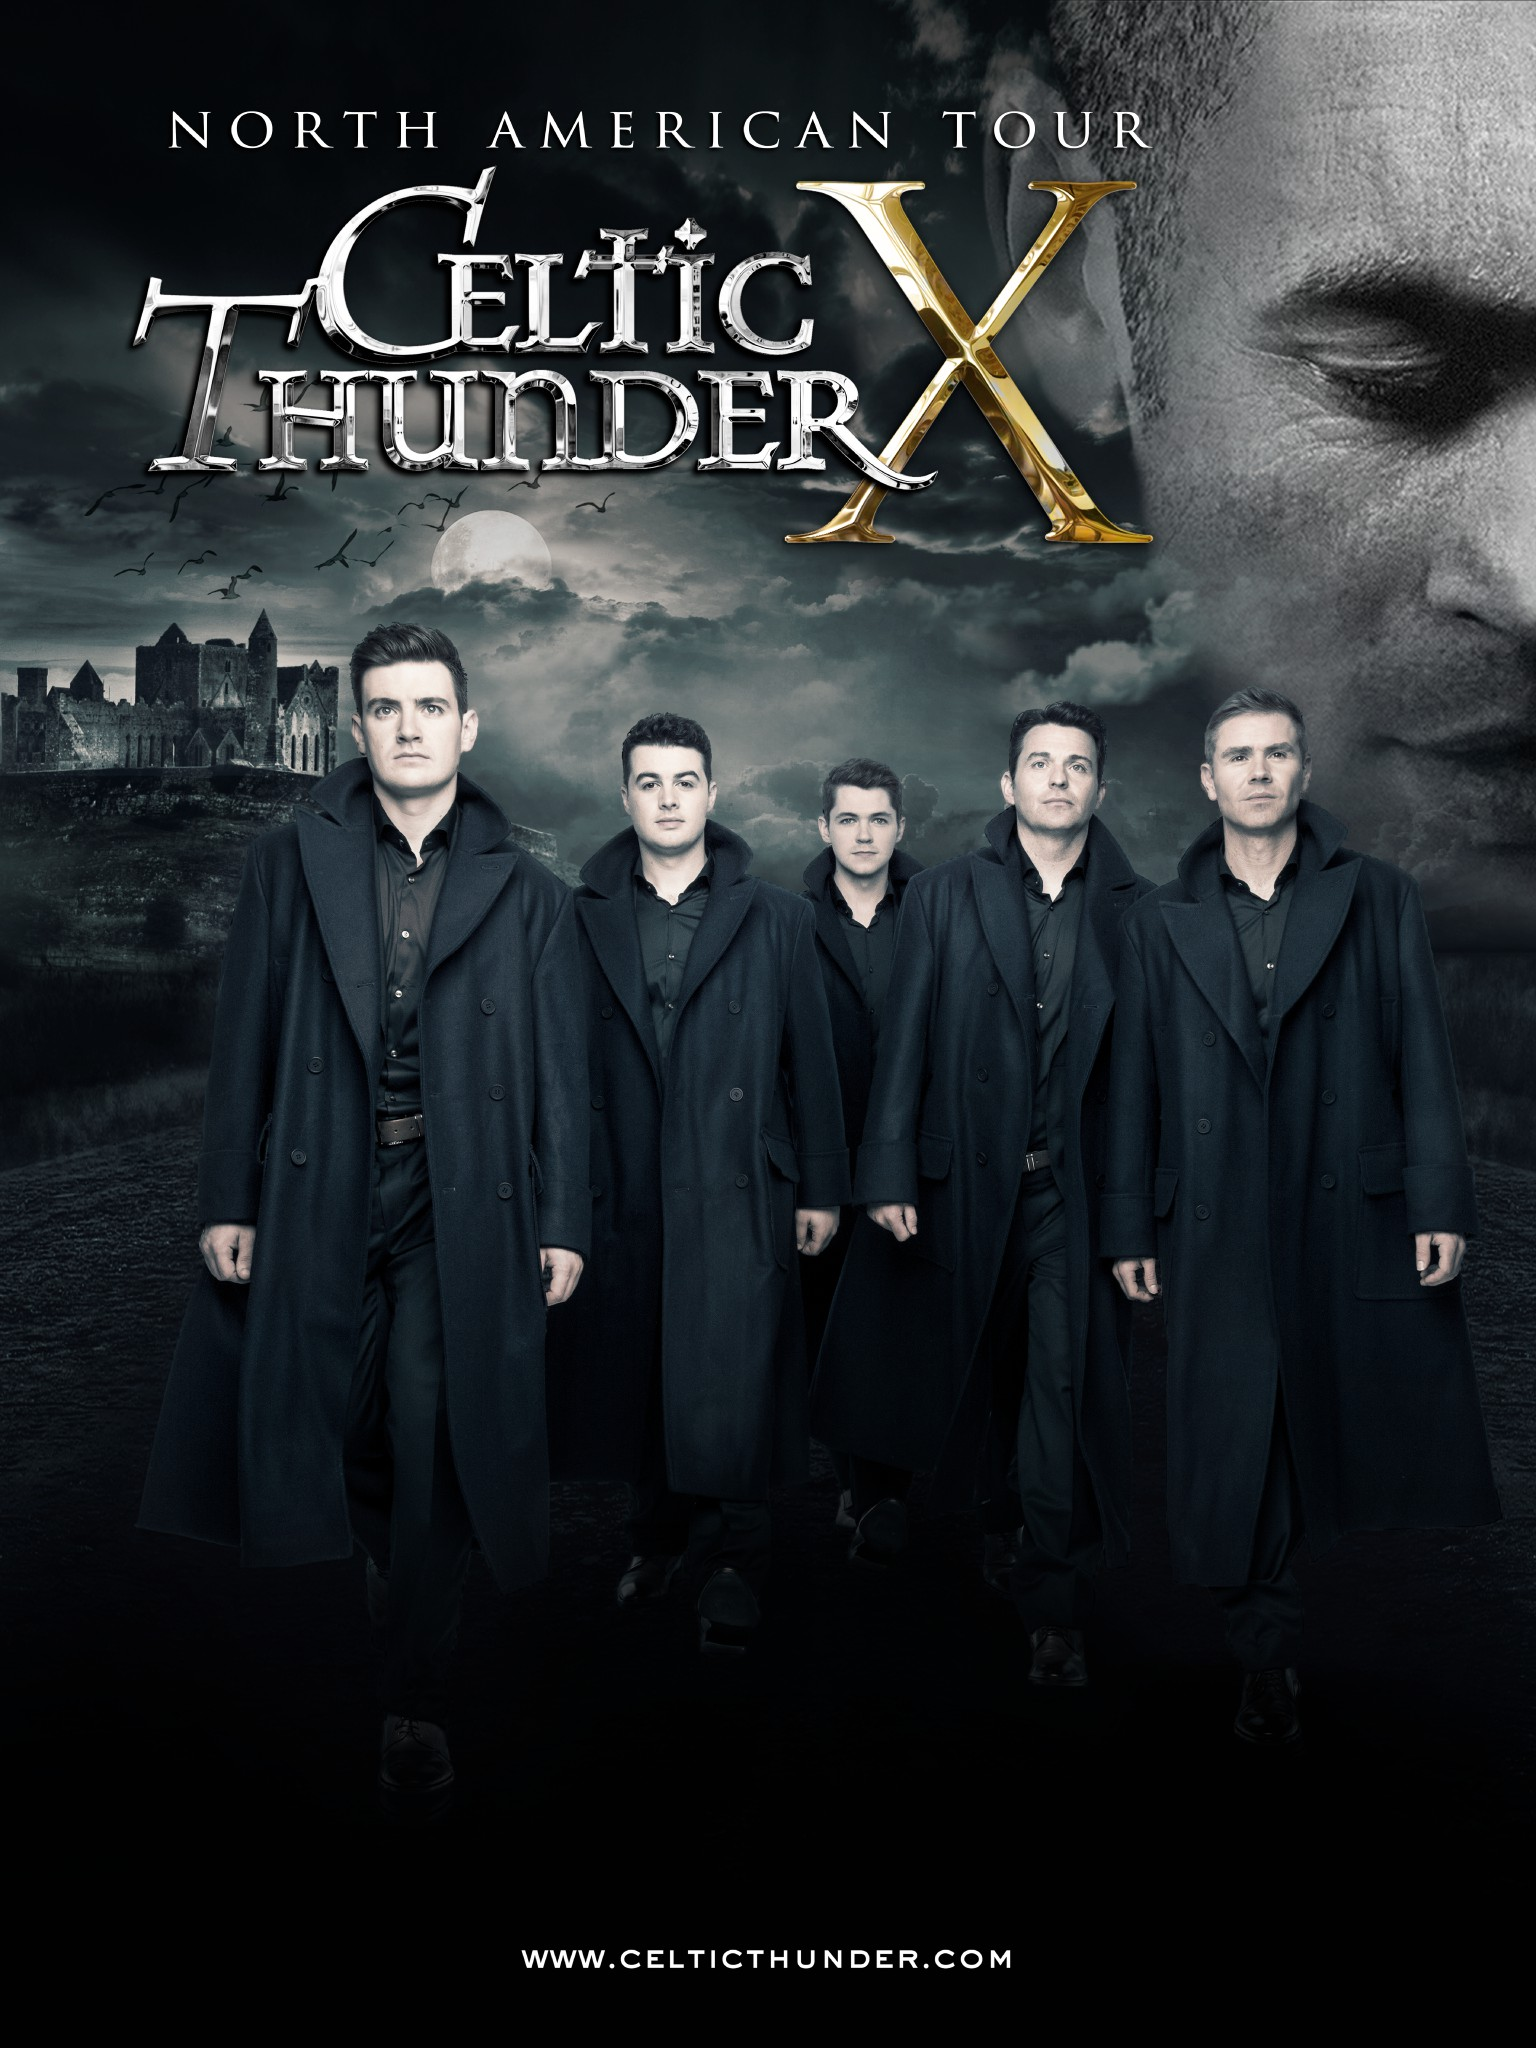 Image for CELTIC THUNDER